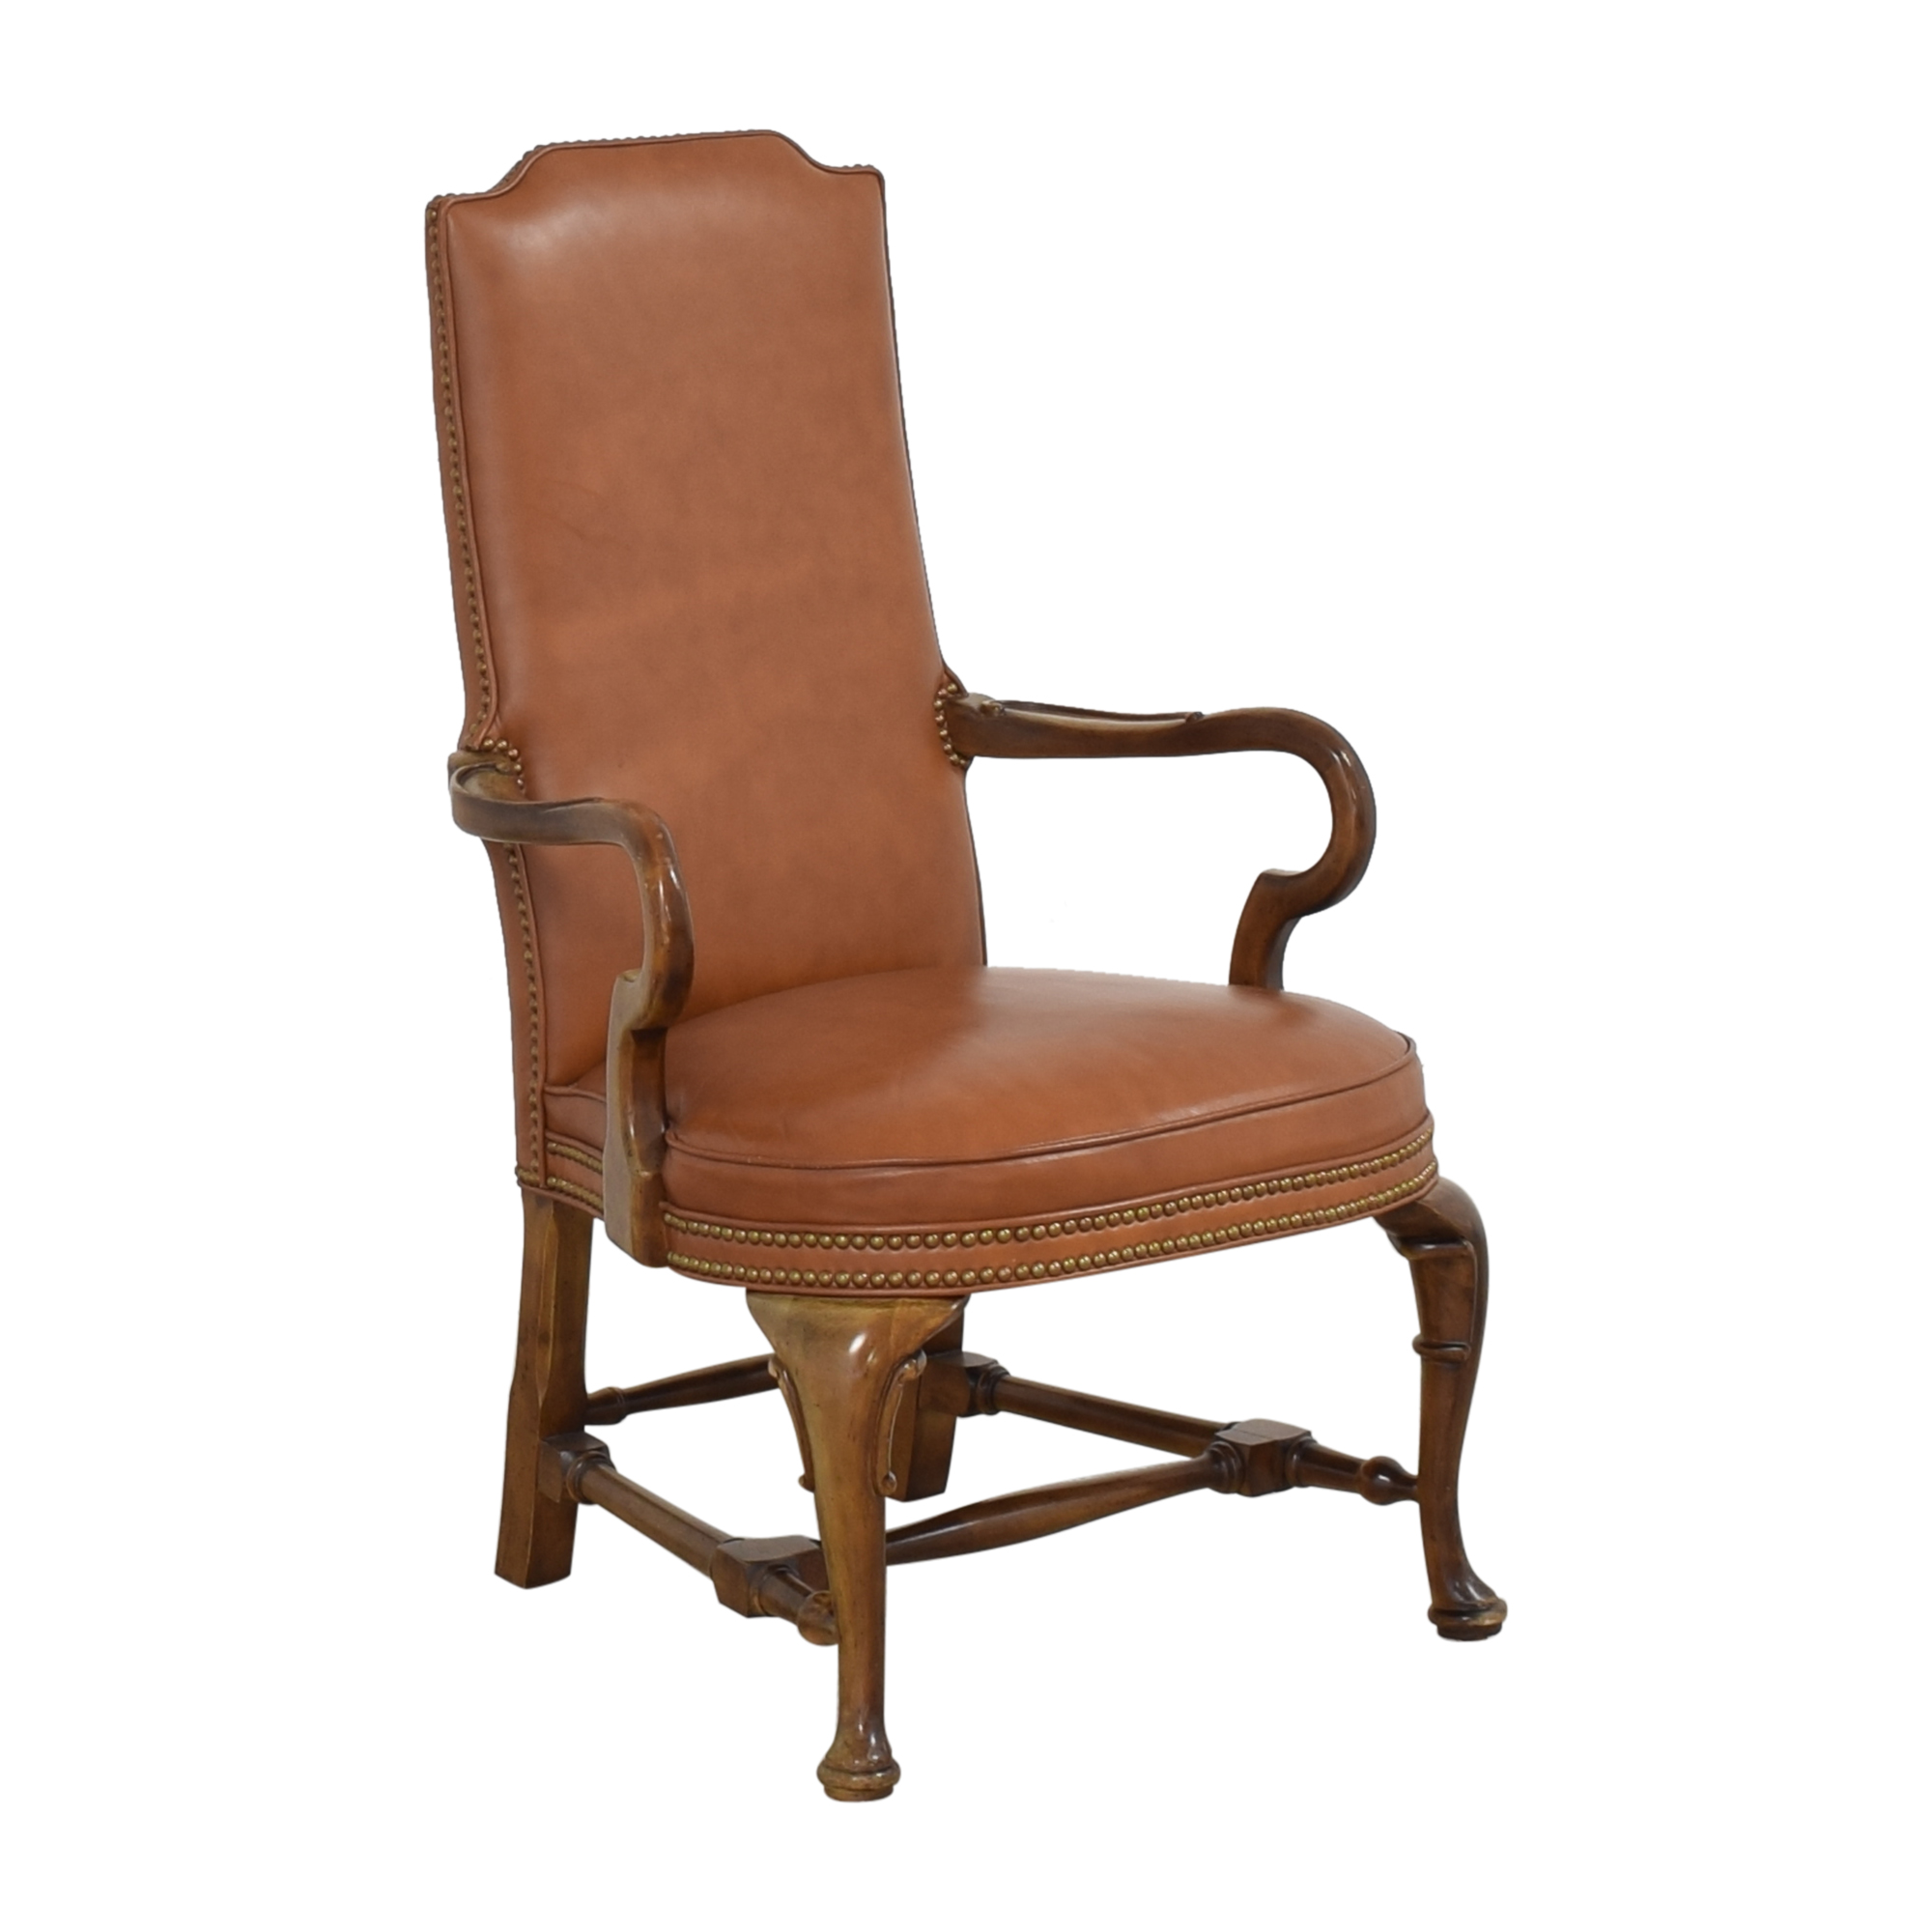 Century Chair Company Century Chair Company High Back Arm Chair nyc